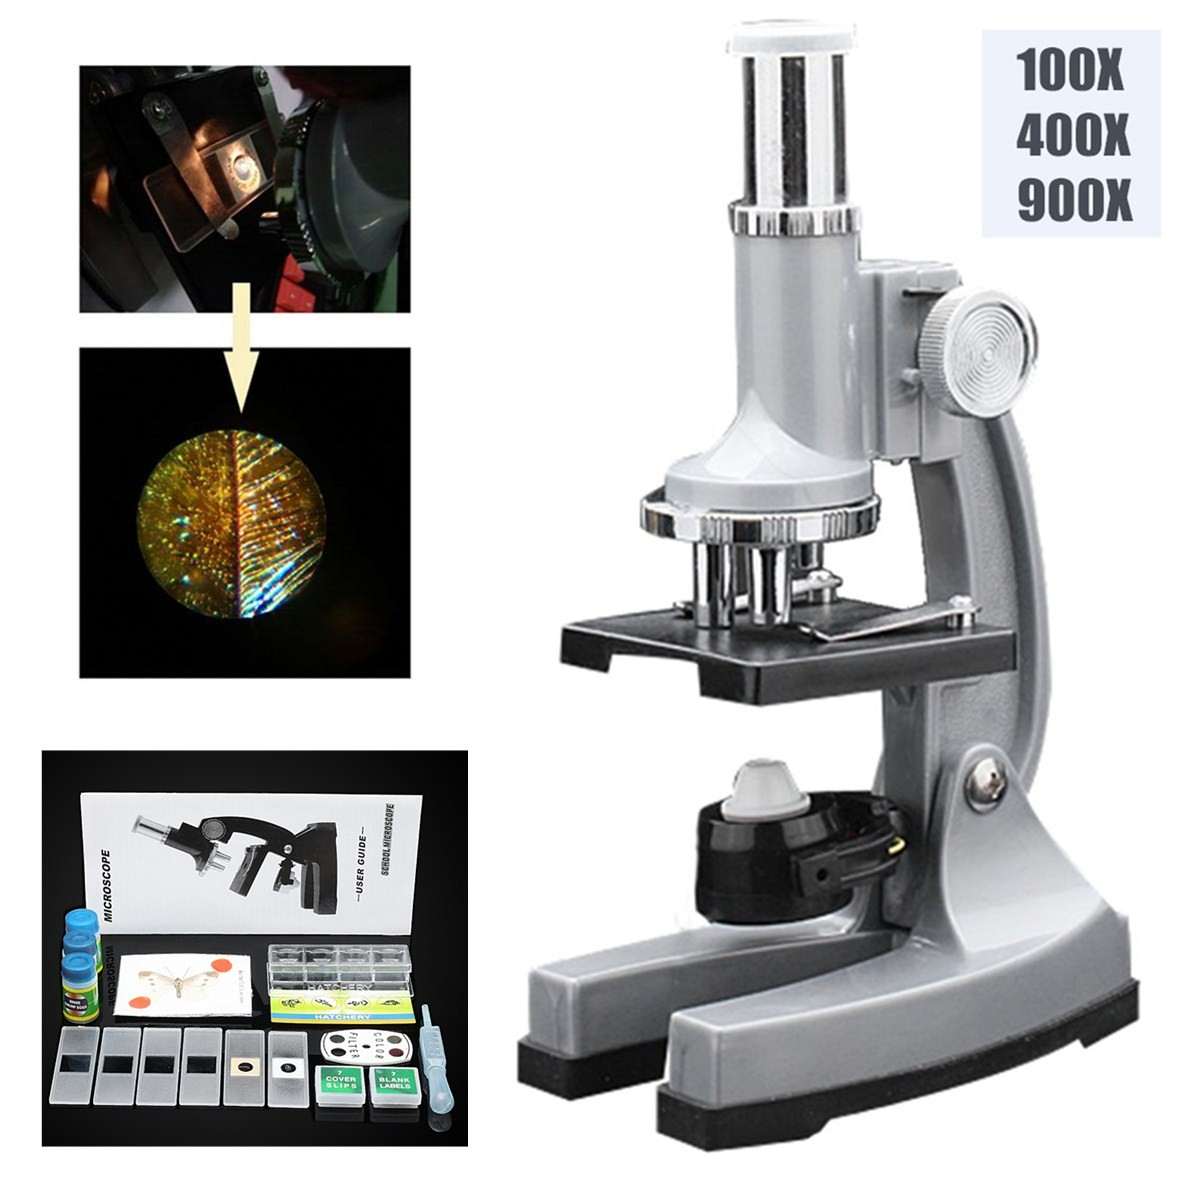 Educational LED Classic Microscope 100x 400x 900x Children Gift Microscope for Kids To Learn Science Christmas Birthday Gift